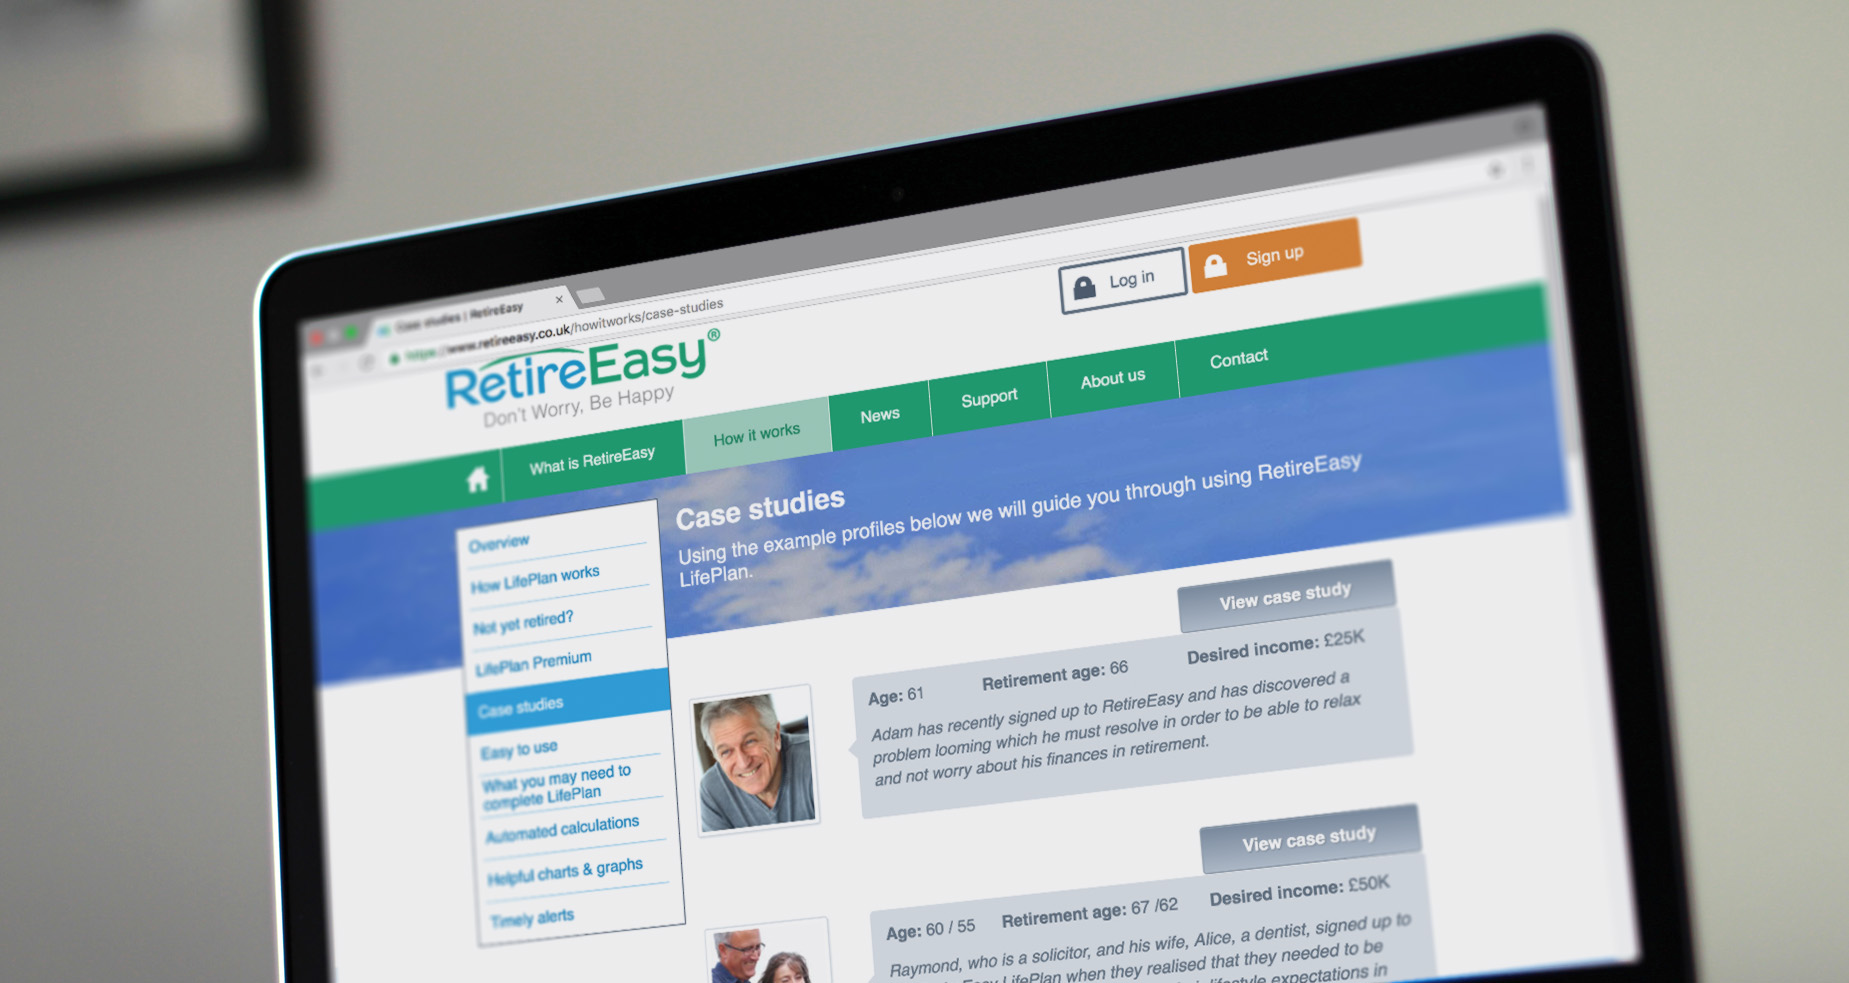 RetireEasy Retirement Planning Software on a Laptop